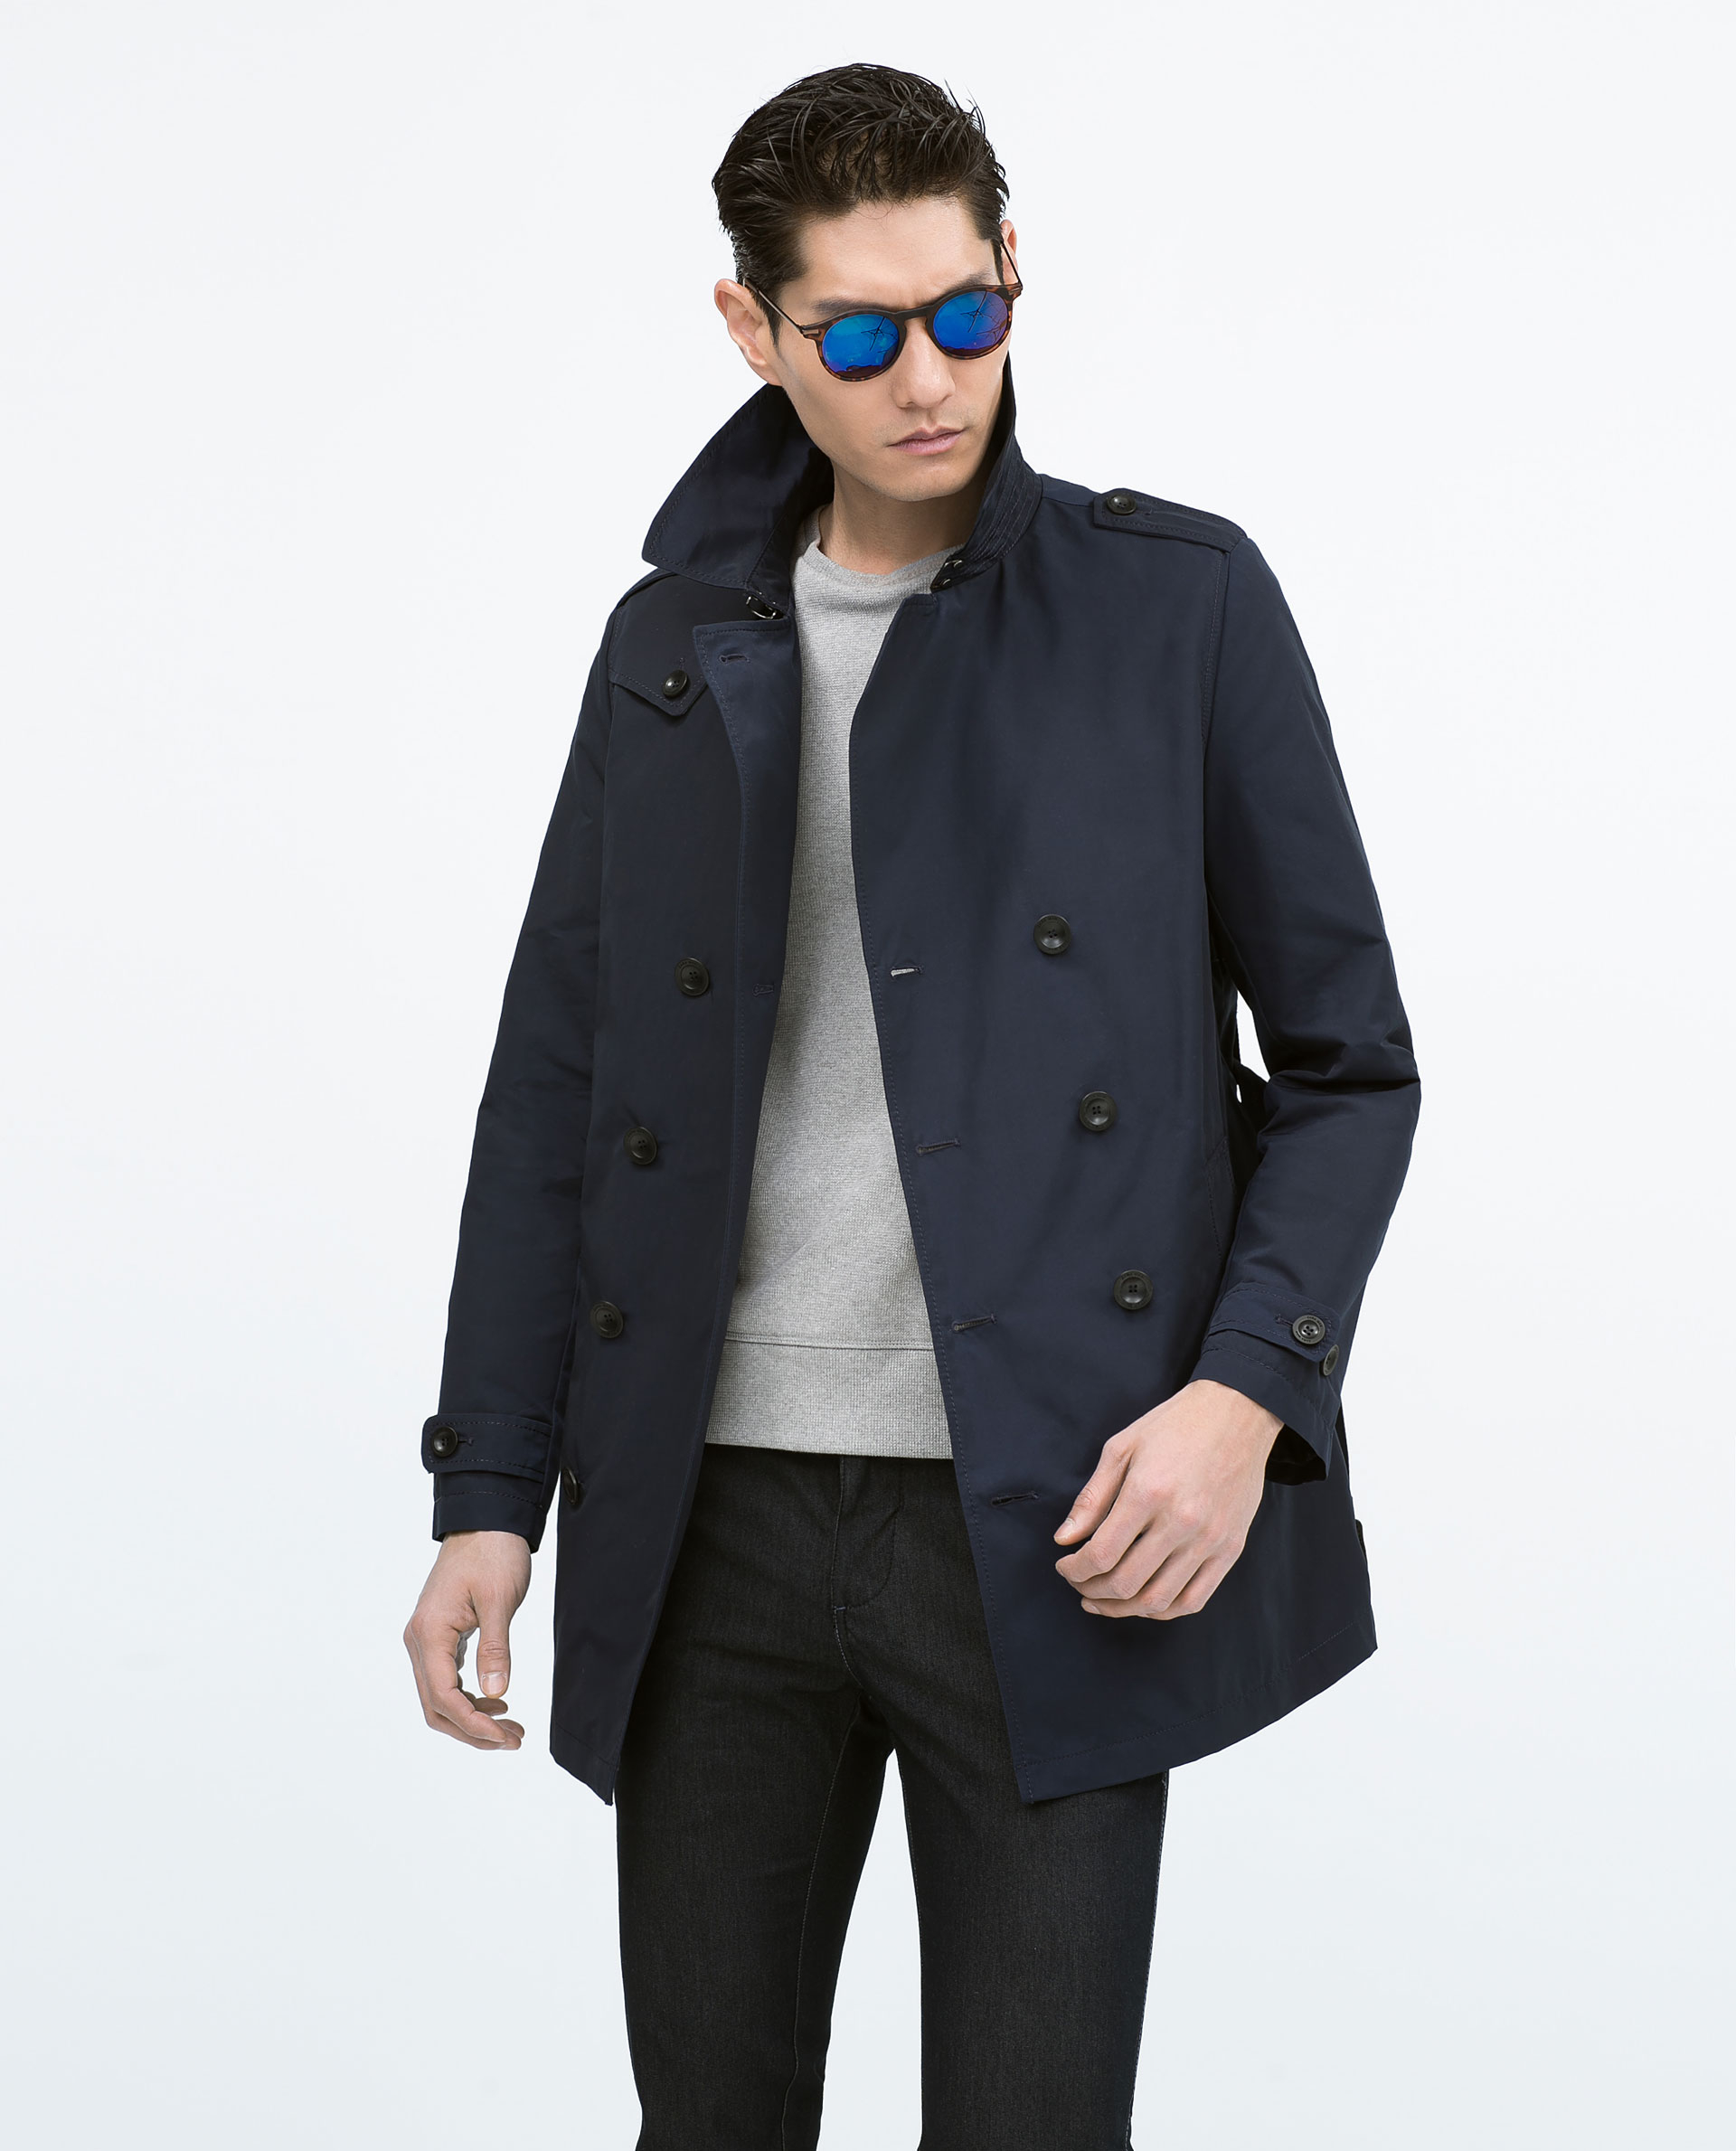 long or short outerwear for men Layer up in fashionable men's outerwear this season. Stay warm and stylish in double breasted coats, trench coats and other versatile outerwear in an assortment of fabrics.